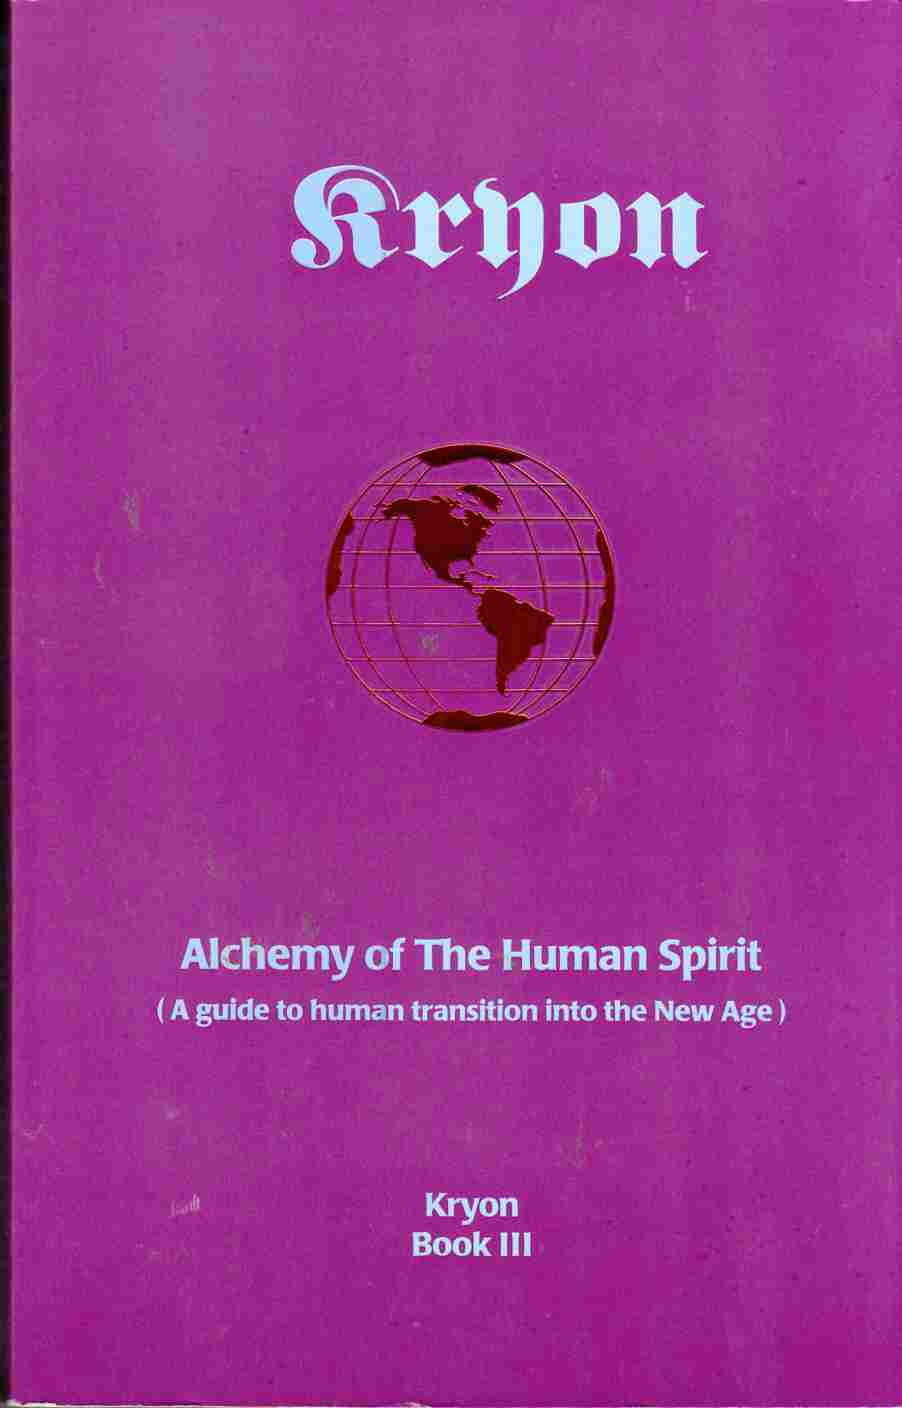 Image for Alchemy of the Human Spirit (A Guide to Human Transition Into the New Age) Kryon Book III